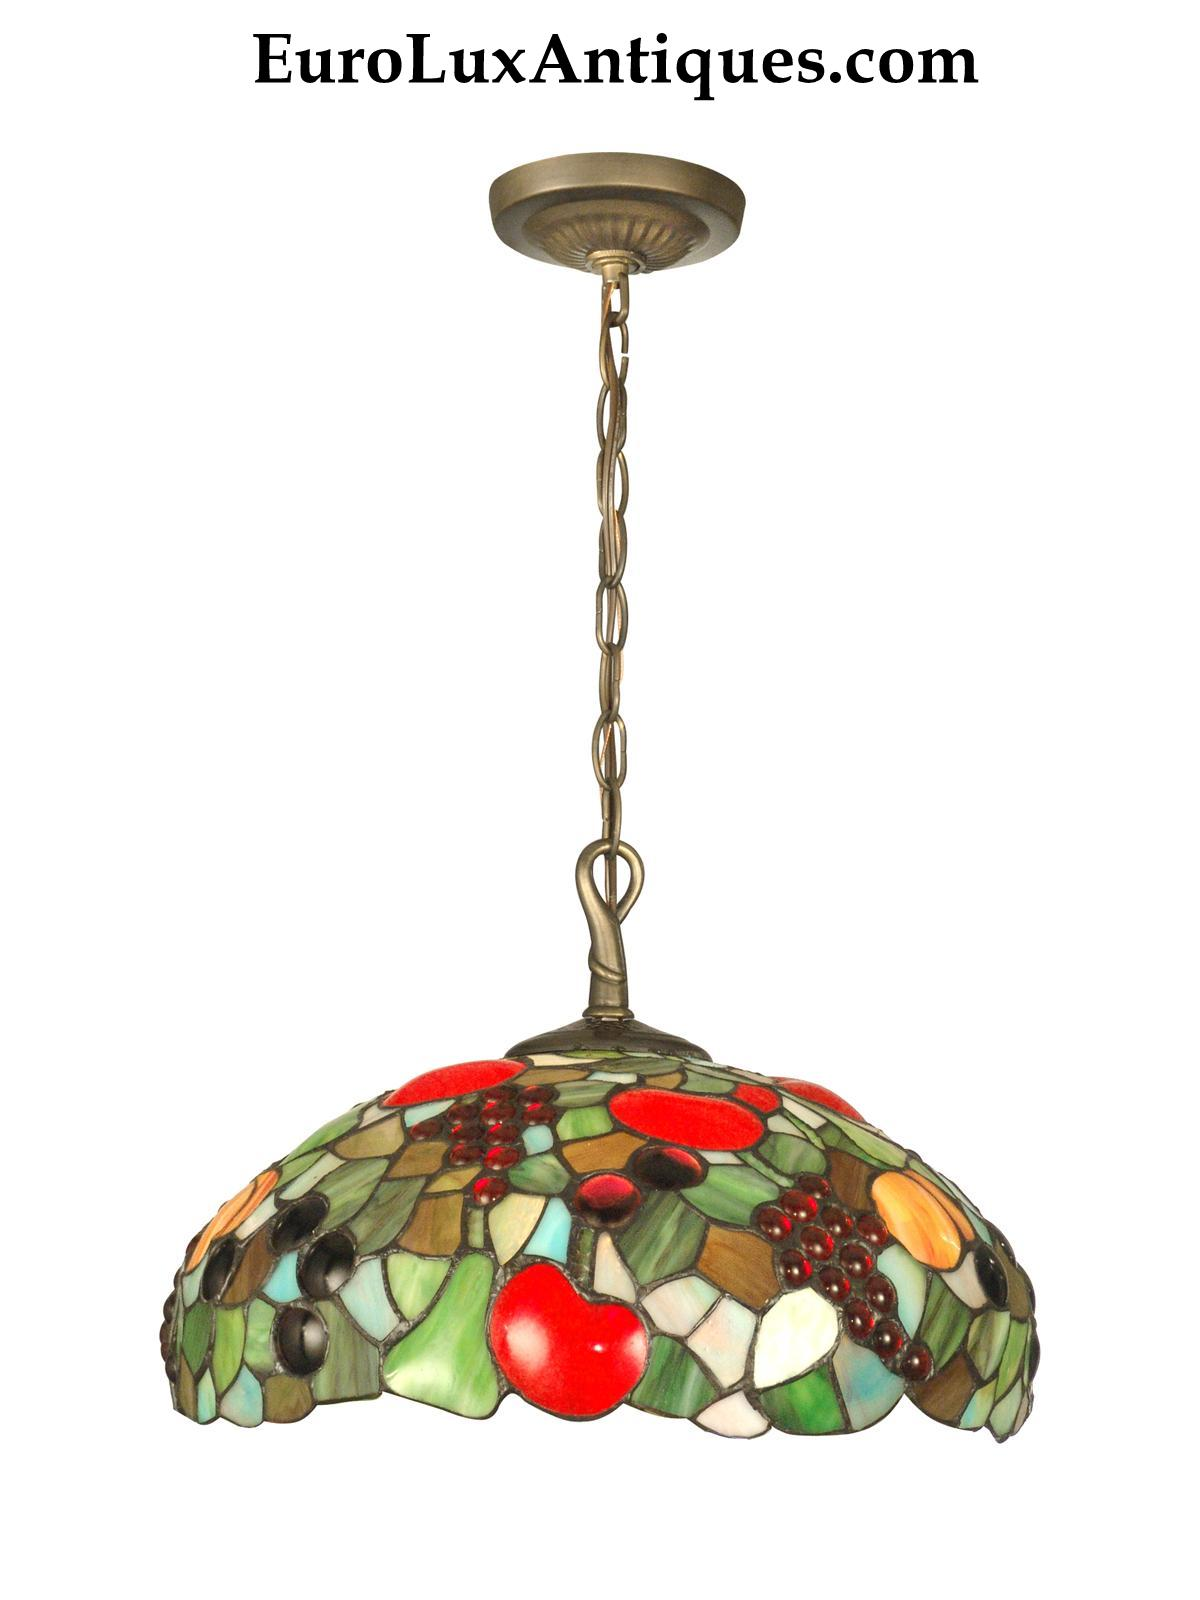 Dale Tiffany fruit chandelier from EuroLuxAntiques.com